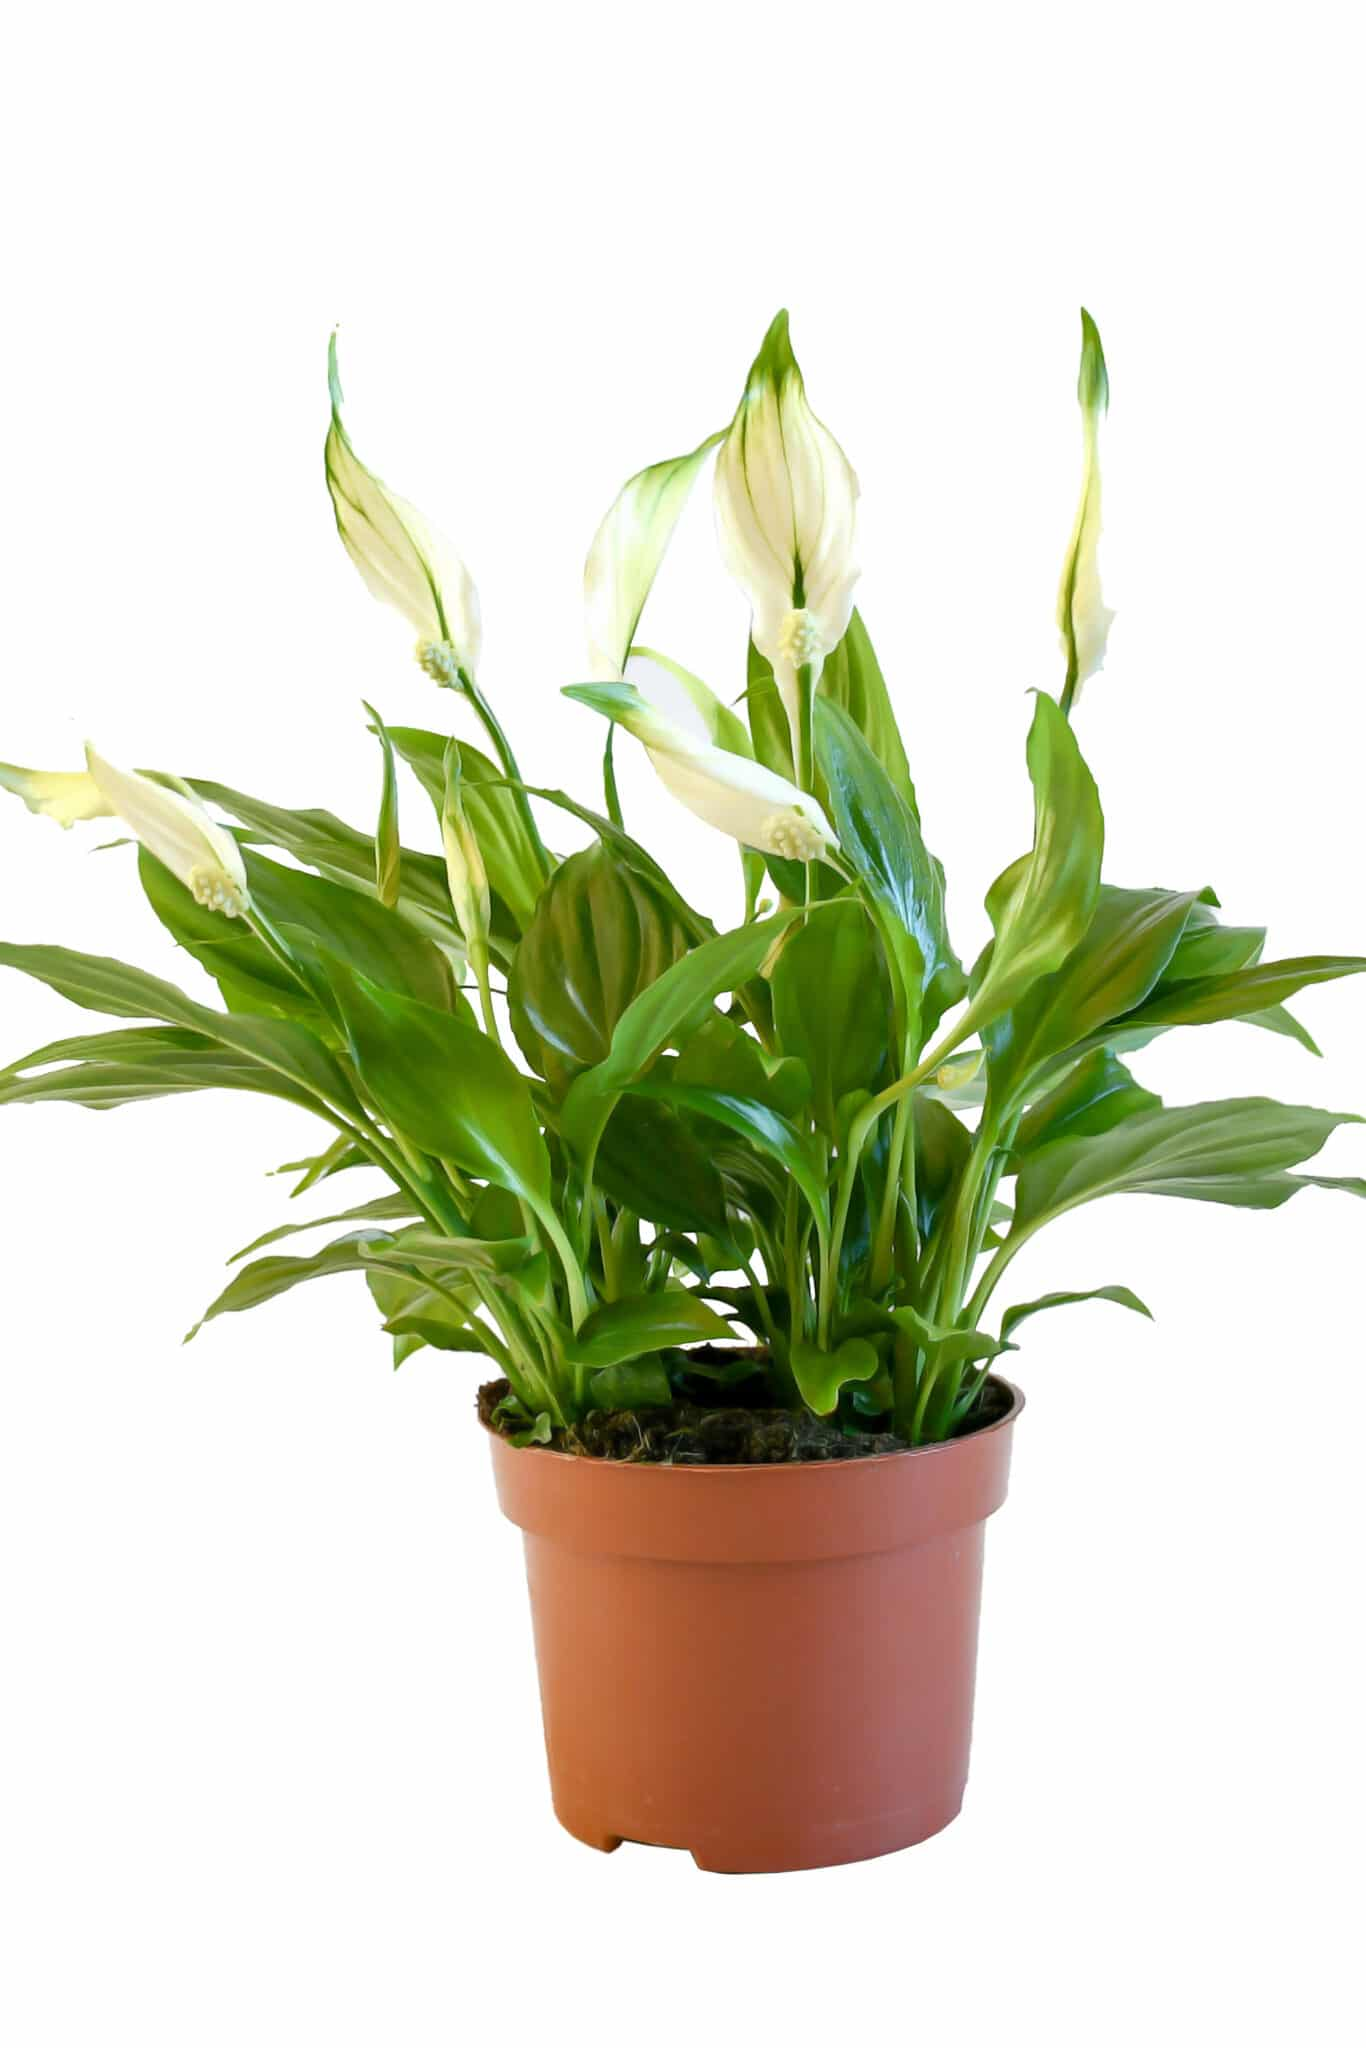 A peace lily in a pot.